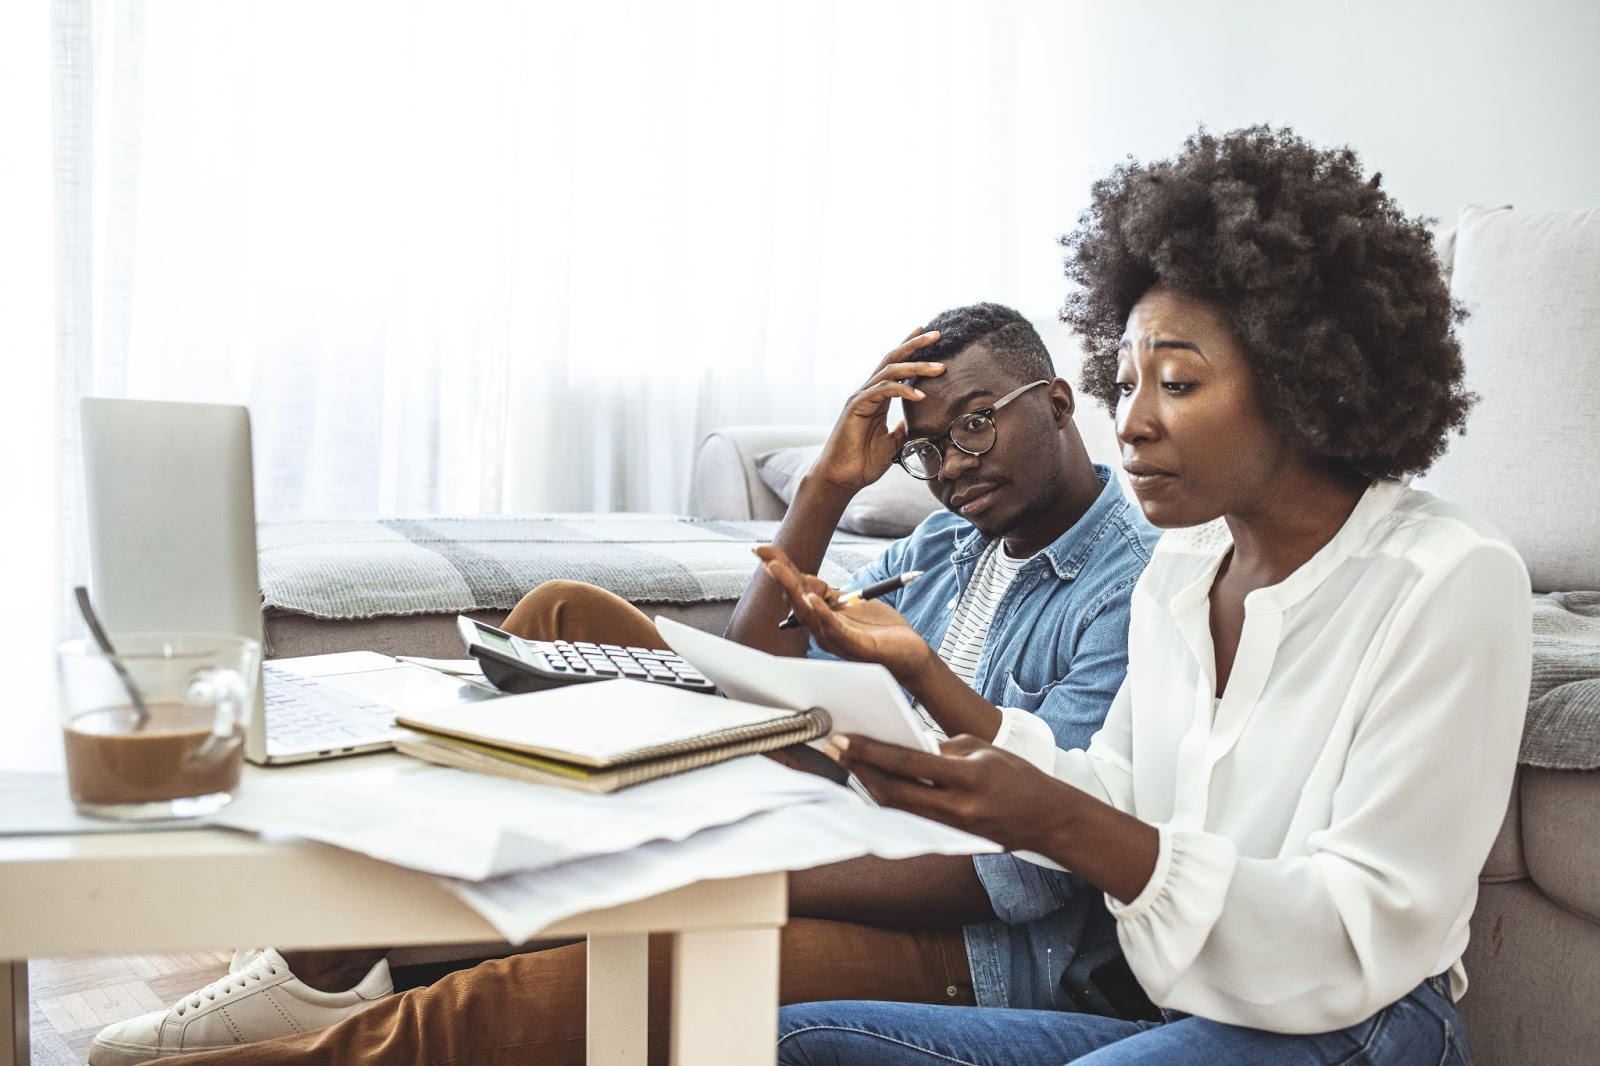 A couple looks over their bills